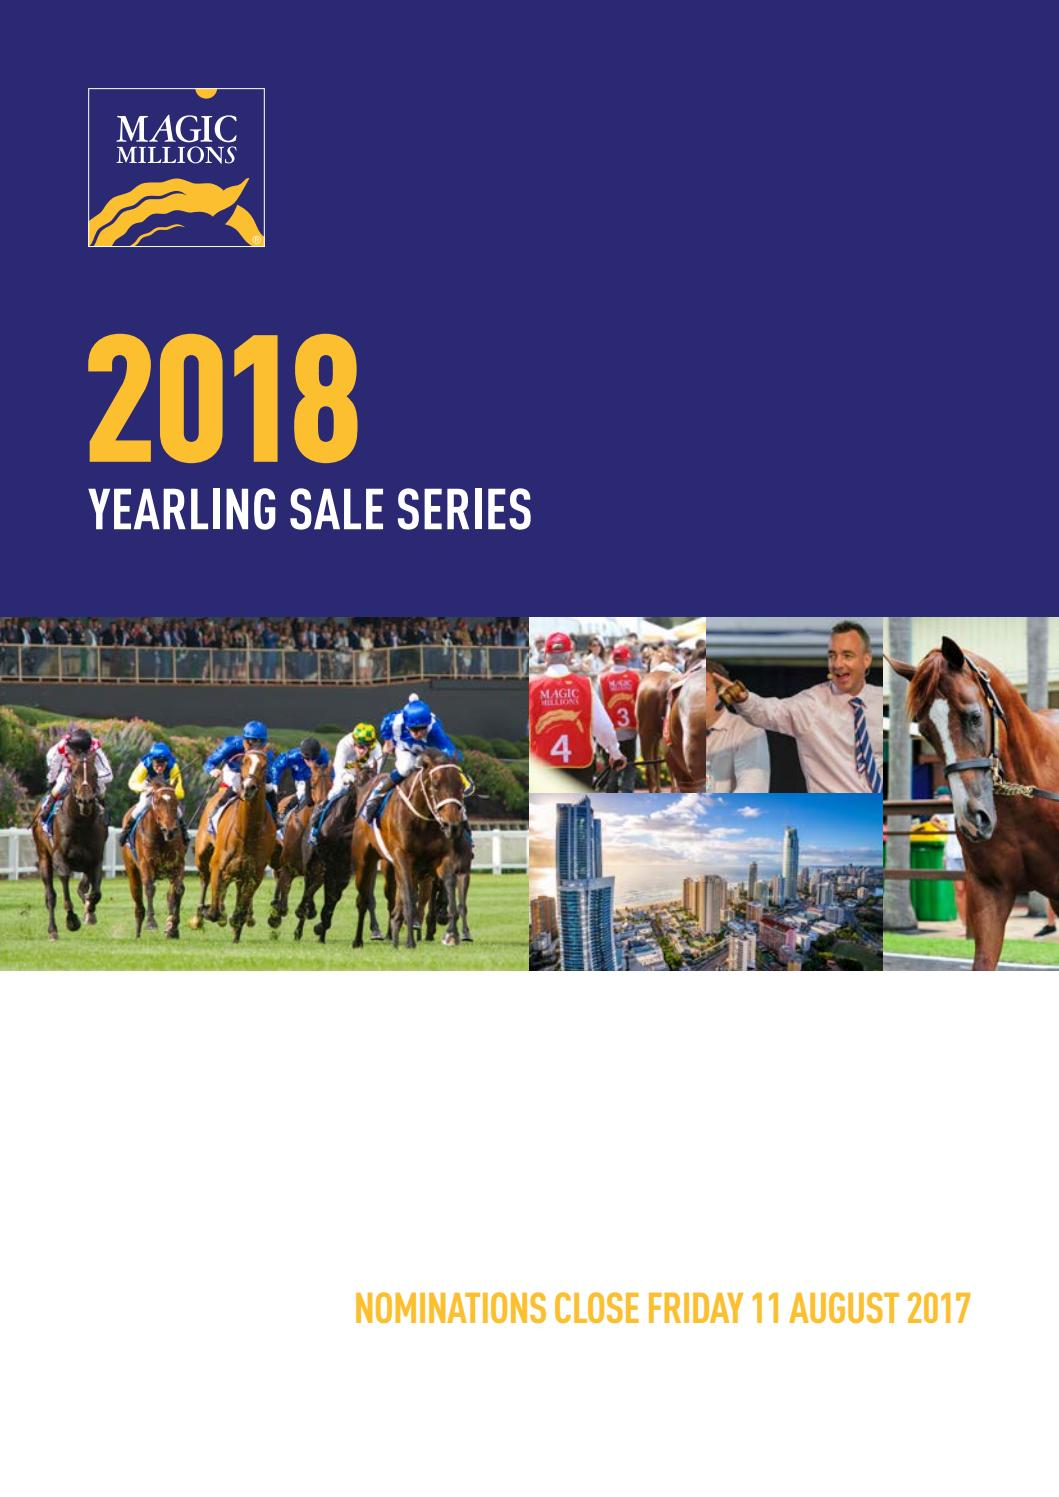 catelouge 2018 magic millions